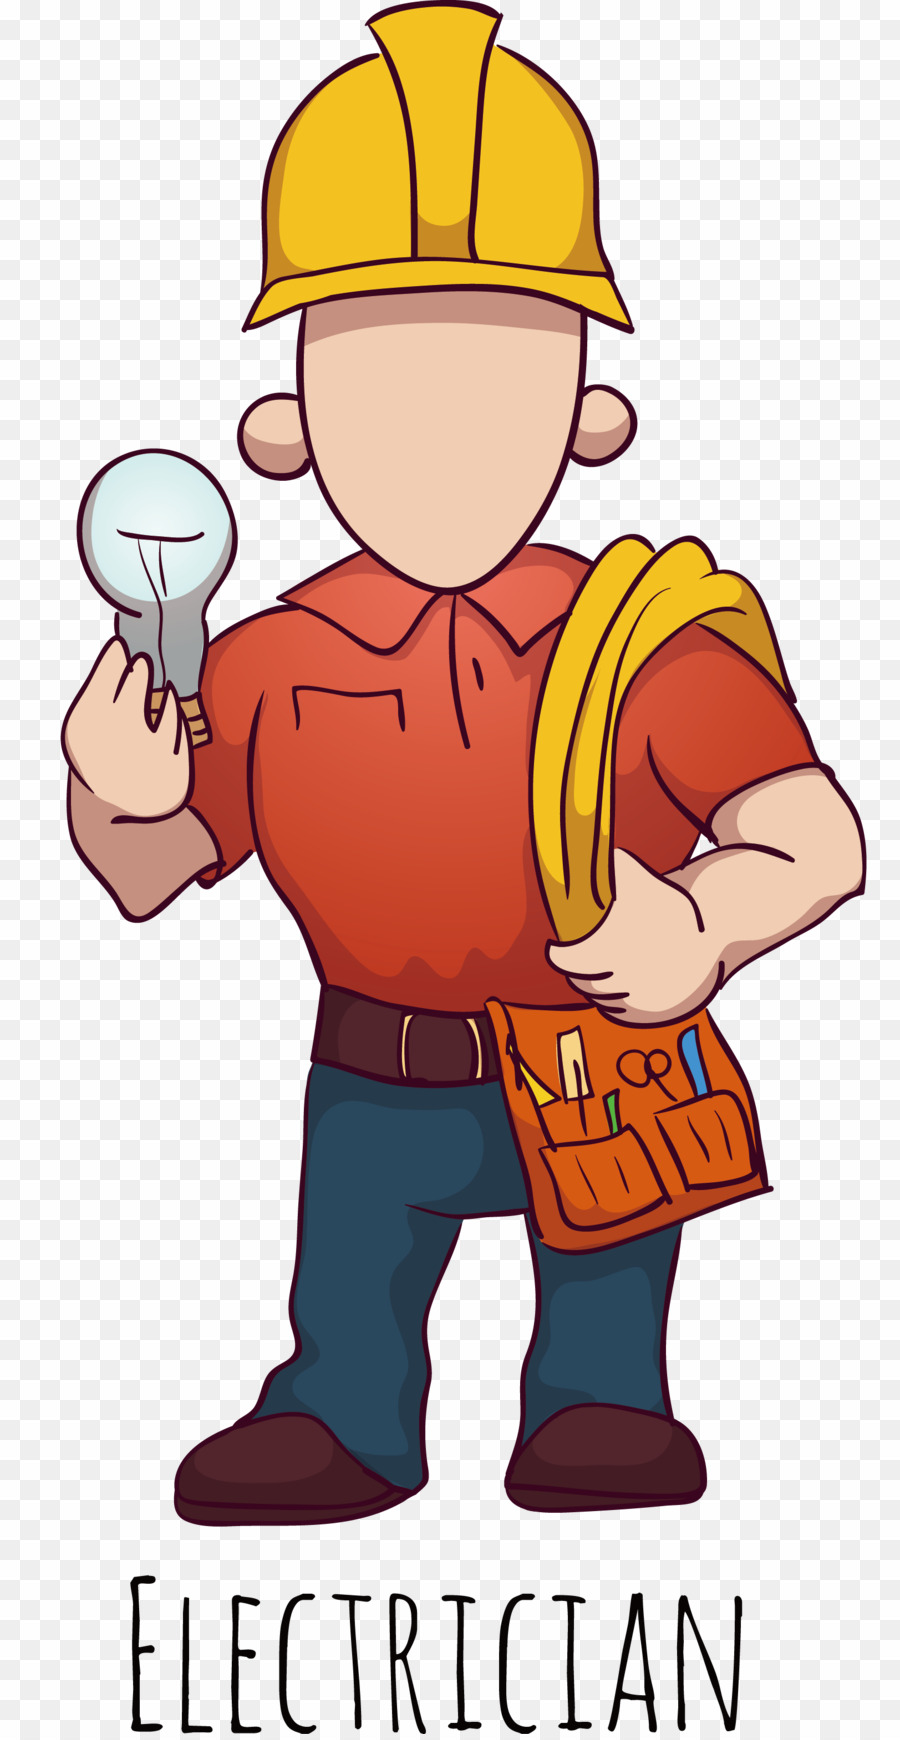 Engineer cartoon png engineering. Electrician clipart electrical installation